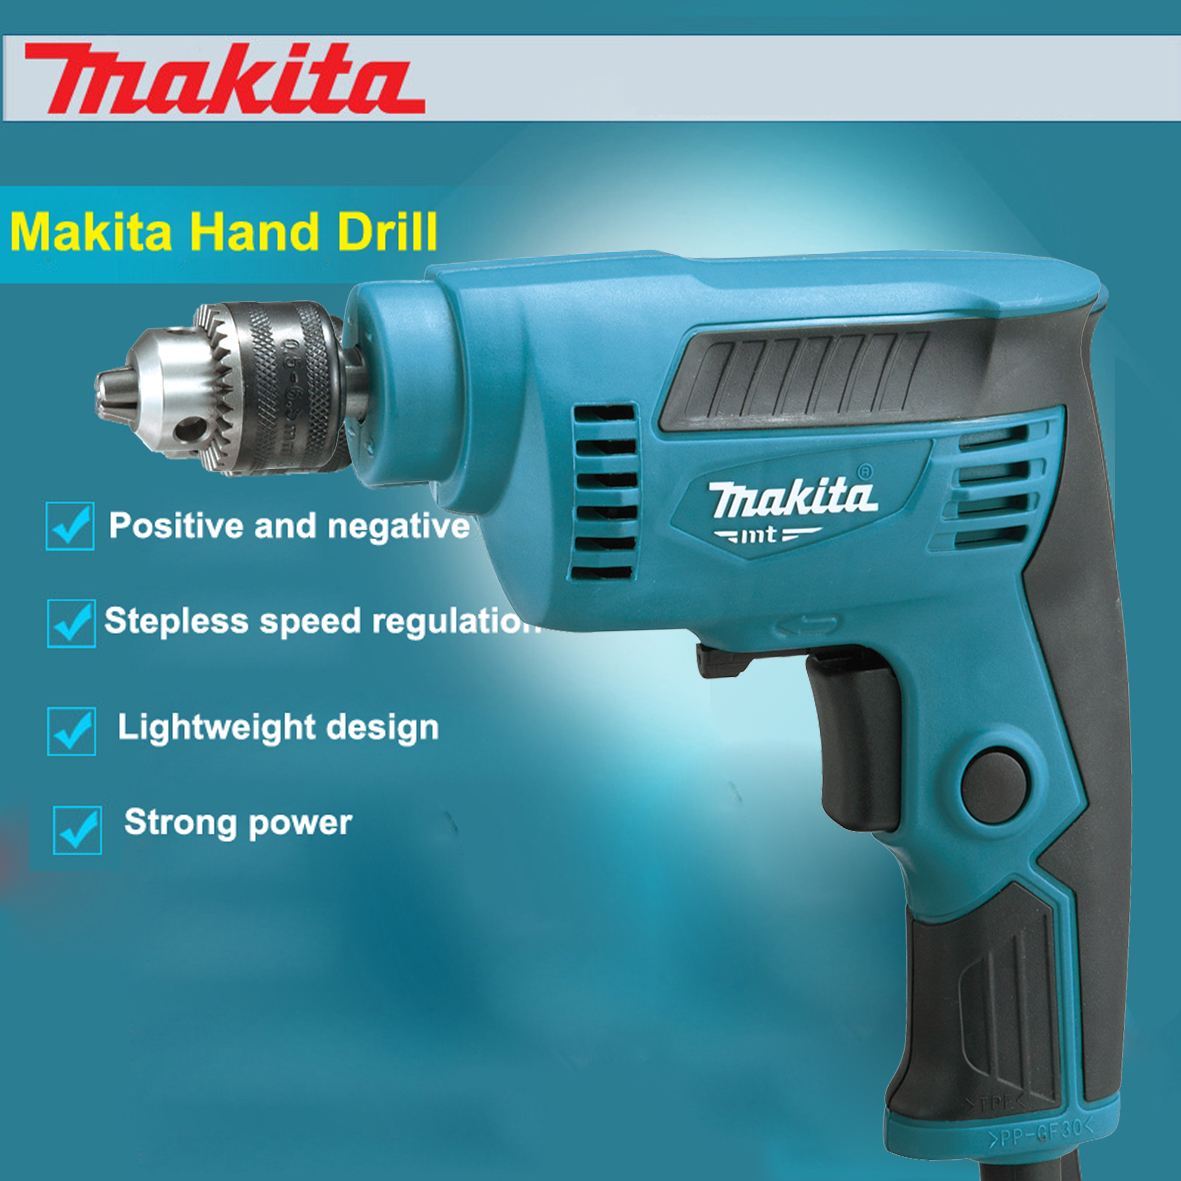 New Japan Makita Electric Drill M6501B Hand Drill High-Speed Multi-Function Speed Control  Forward and Reverse 4,500 RPM 230WNew Japan Makita Electric Drill M6501B Hand Drill High-Speed Multi-Function Speed Control  Forward and Reverse 4,500 RPM 230W